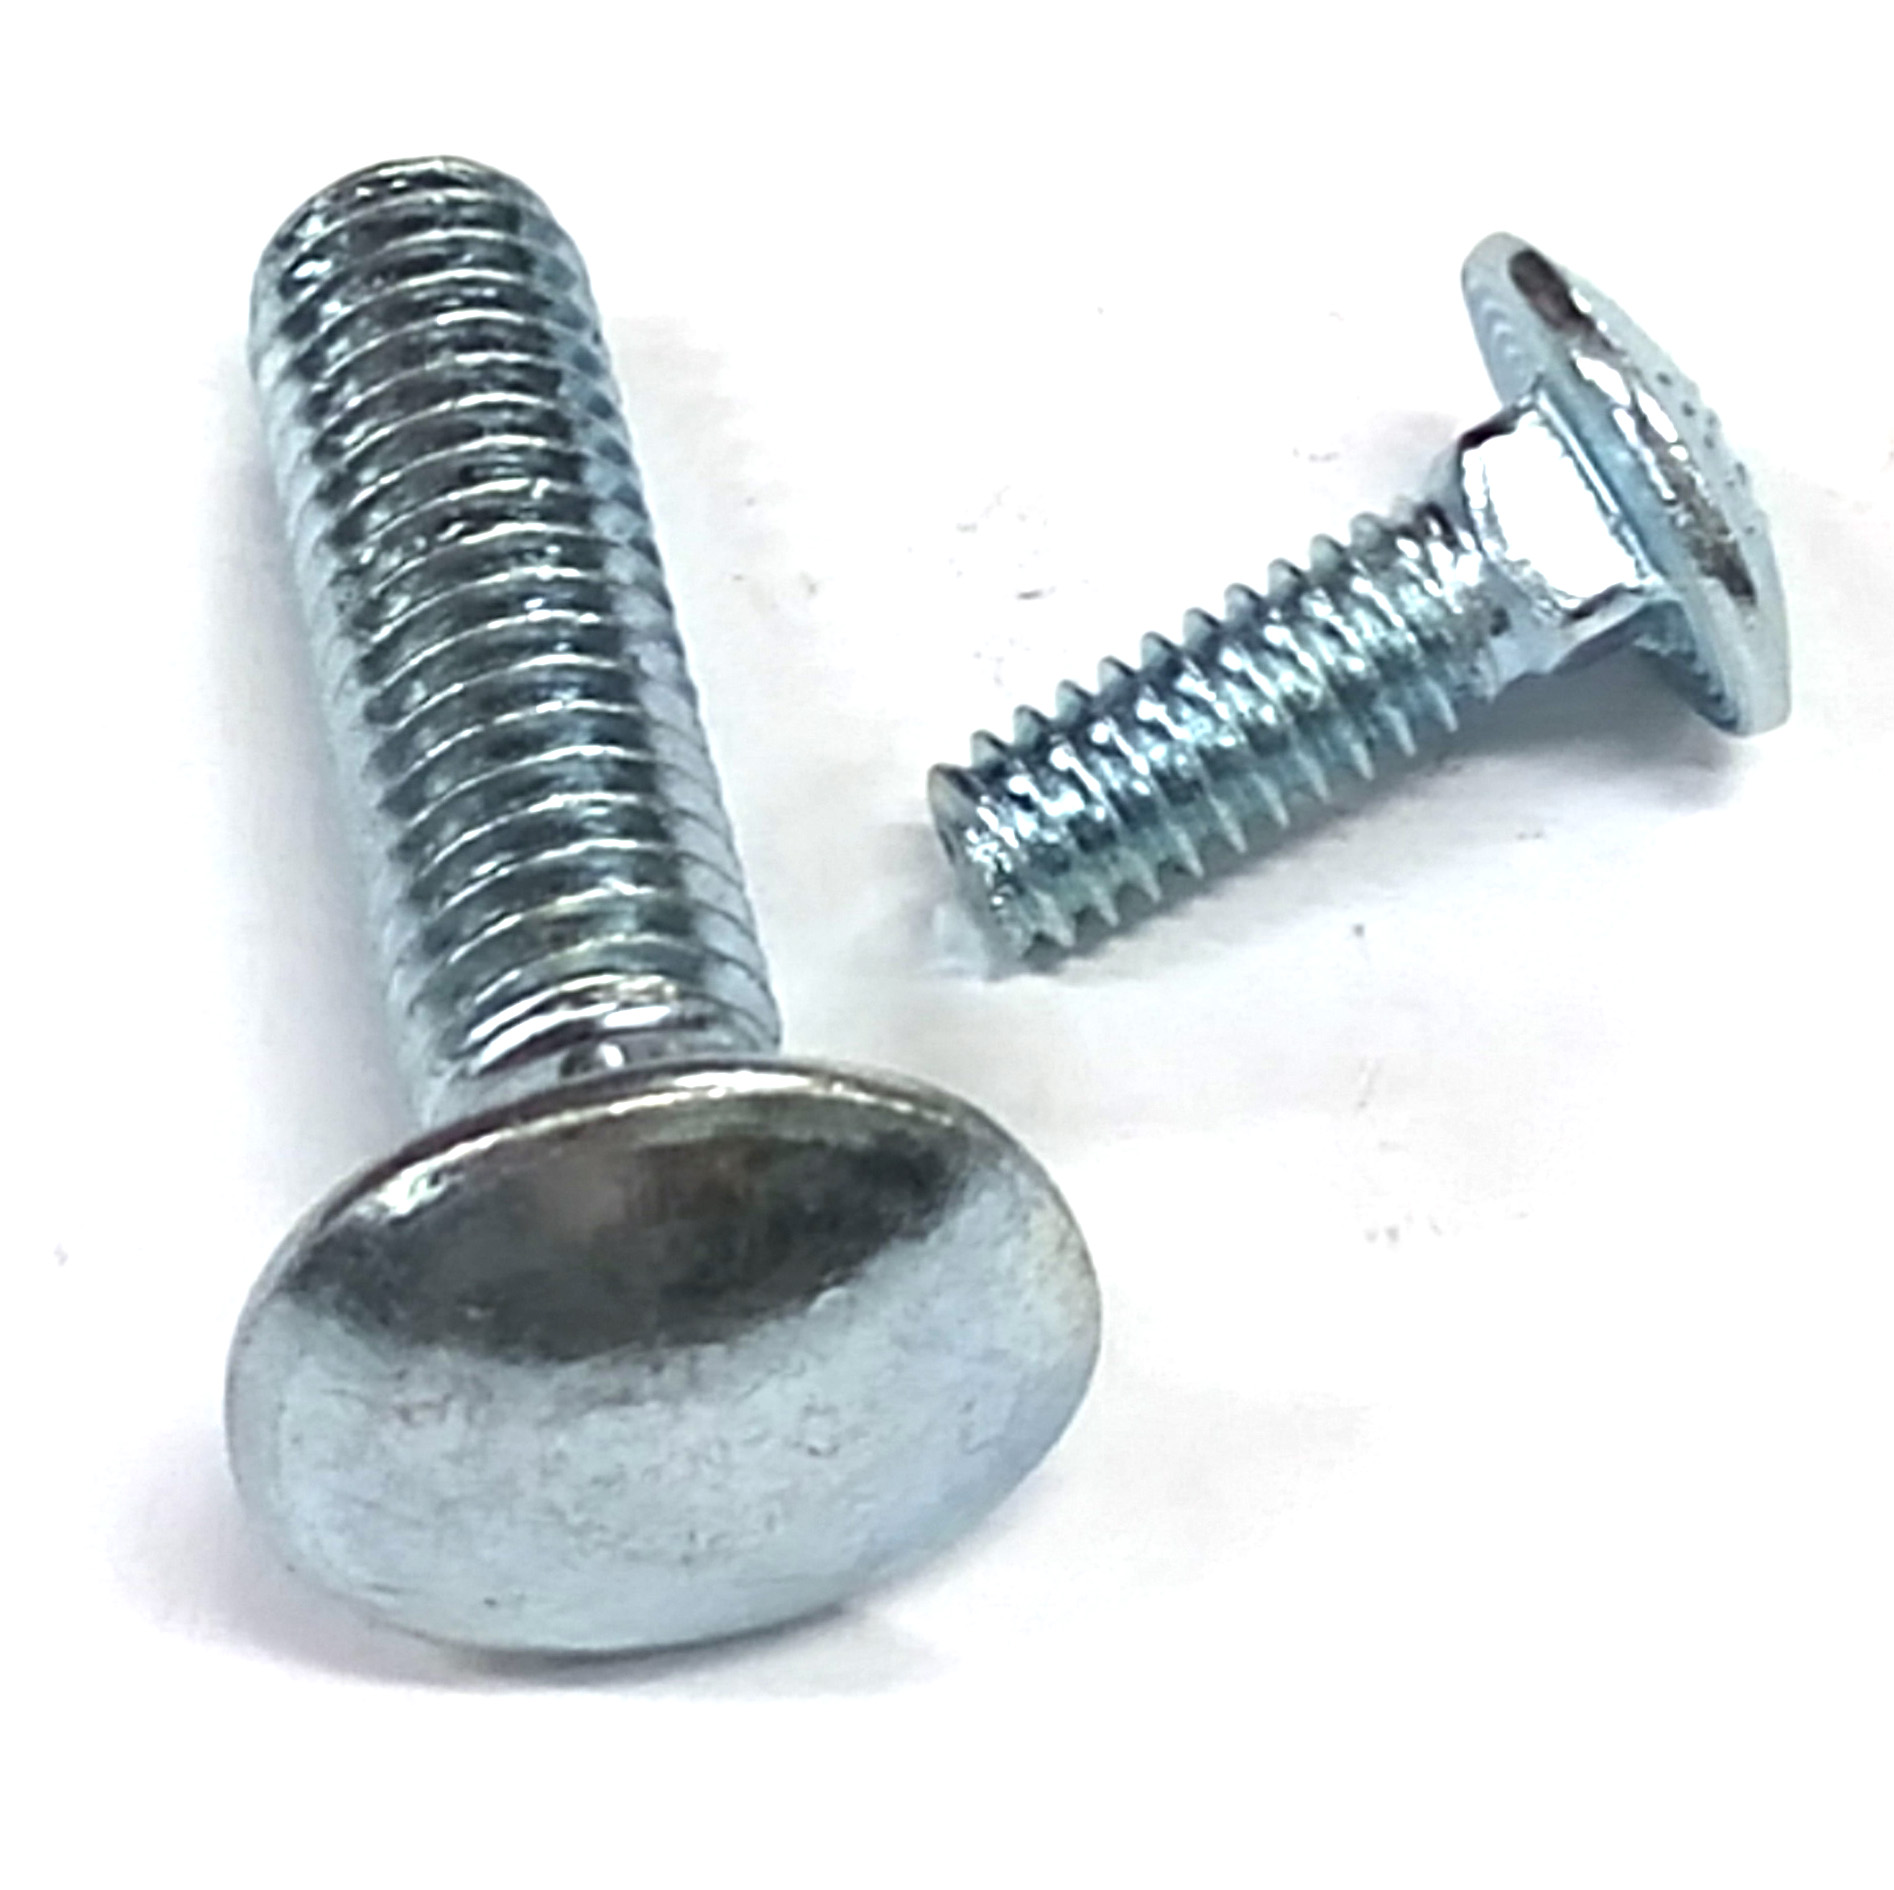 carriage bolt-1.JPG